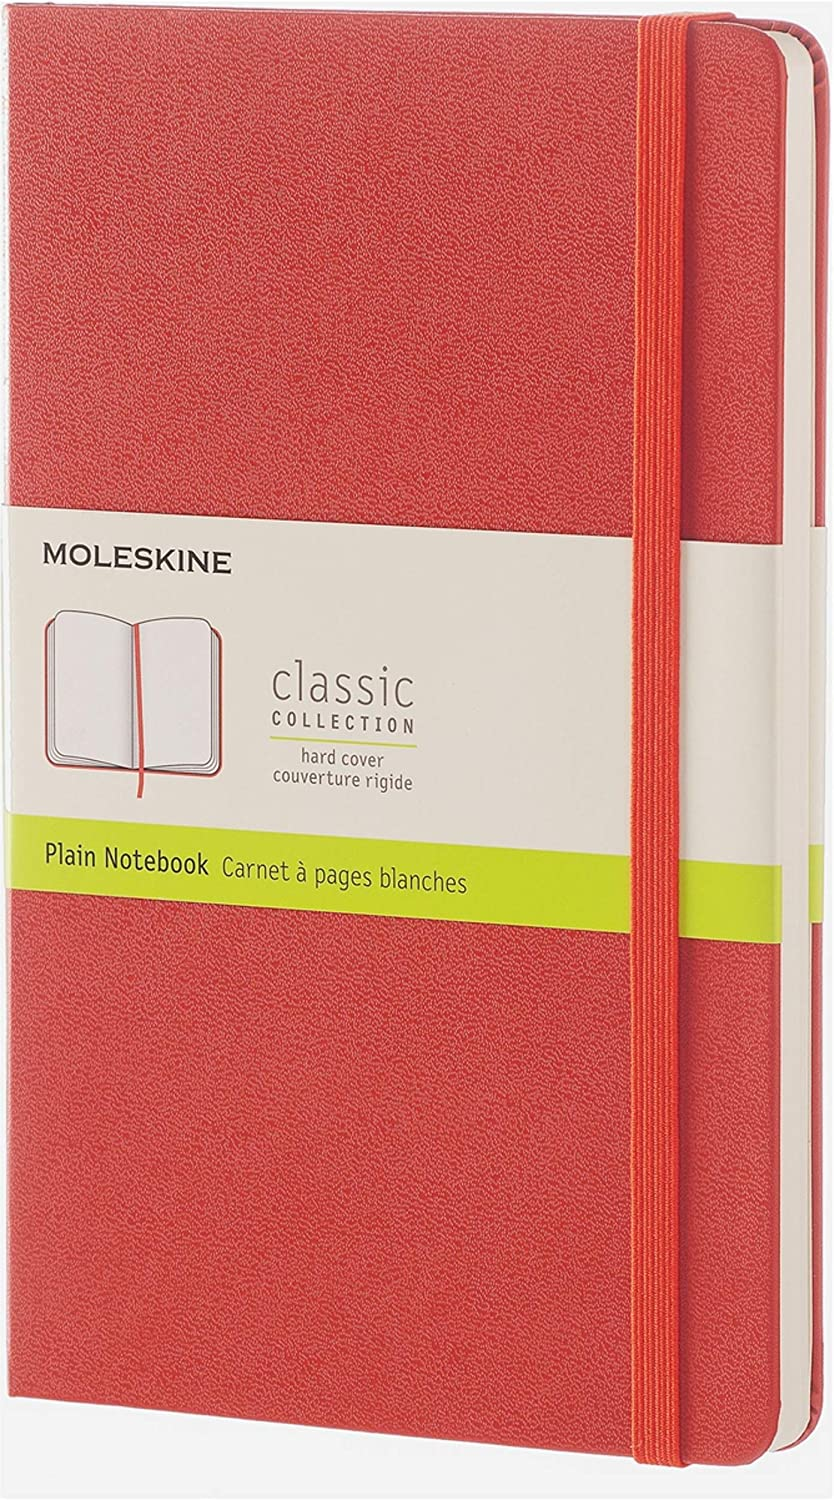 Moleskine OFFicial mail order Classic Notebook Large Plain Coral Orange Hard Be super welcome Cov